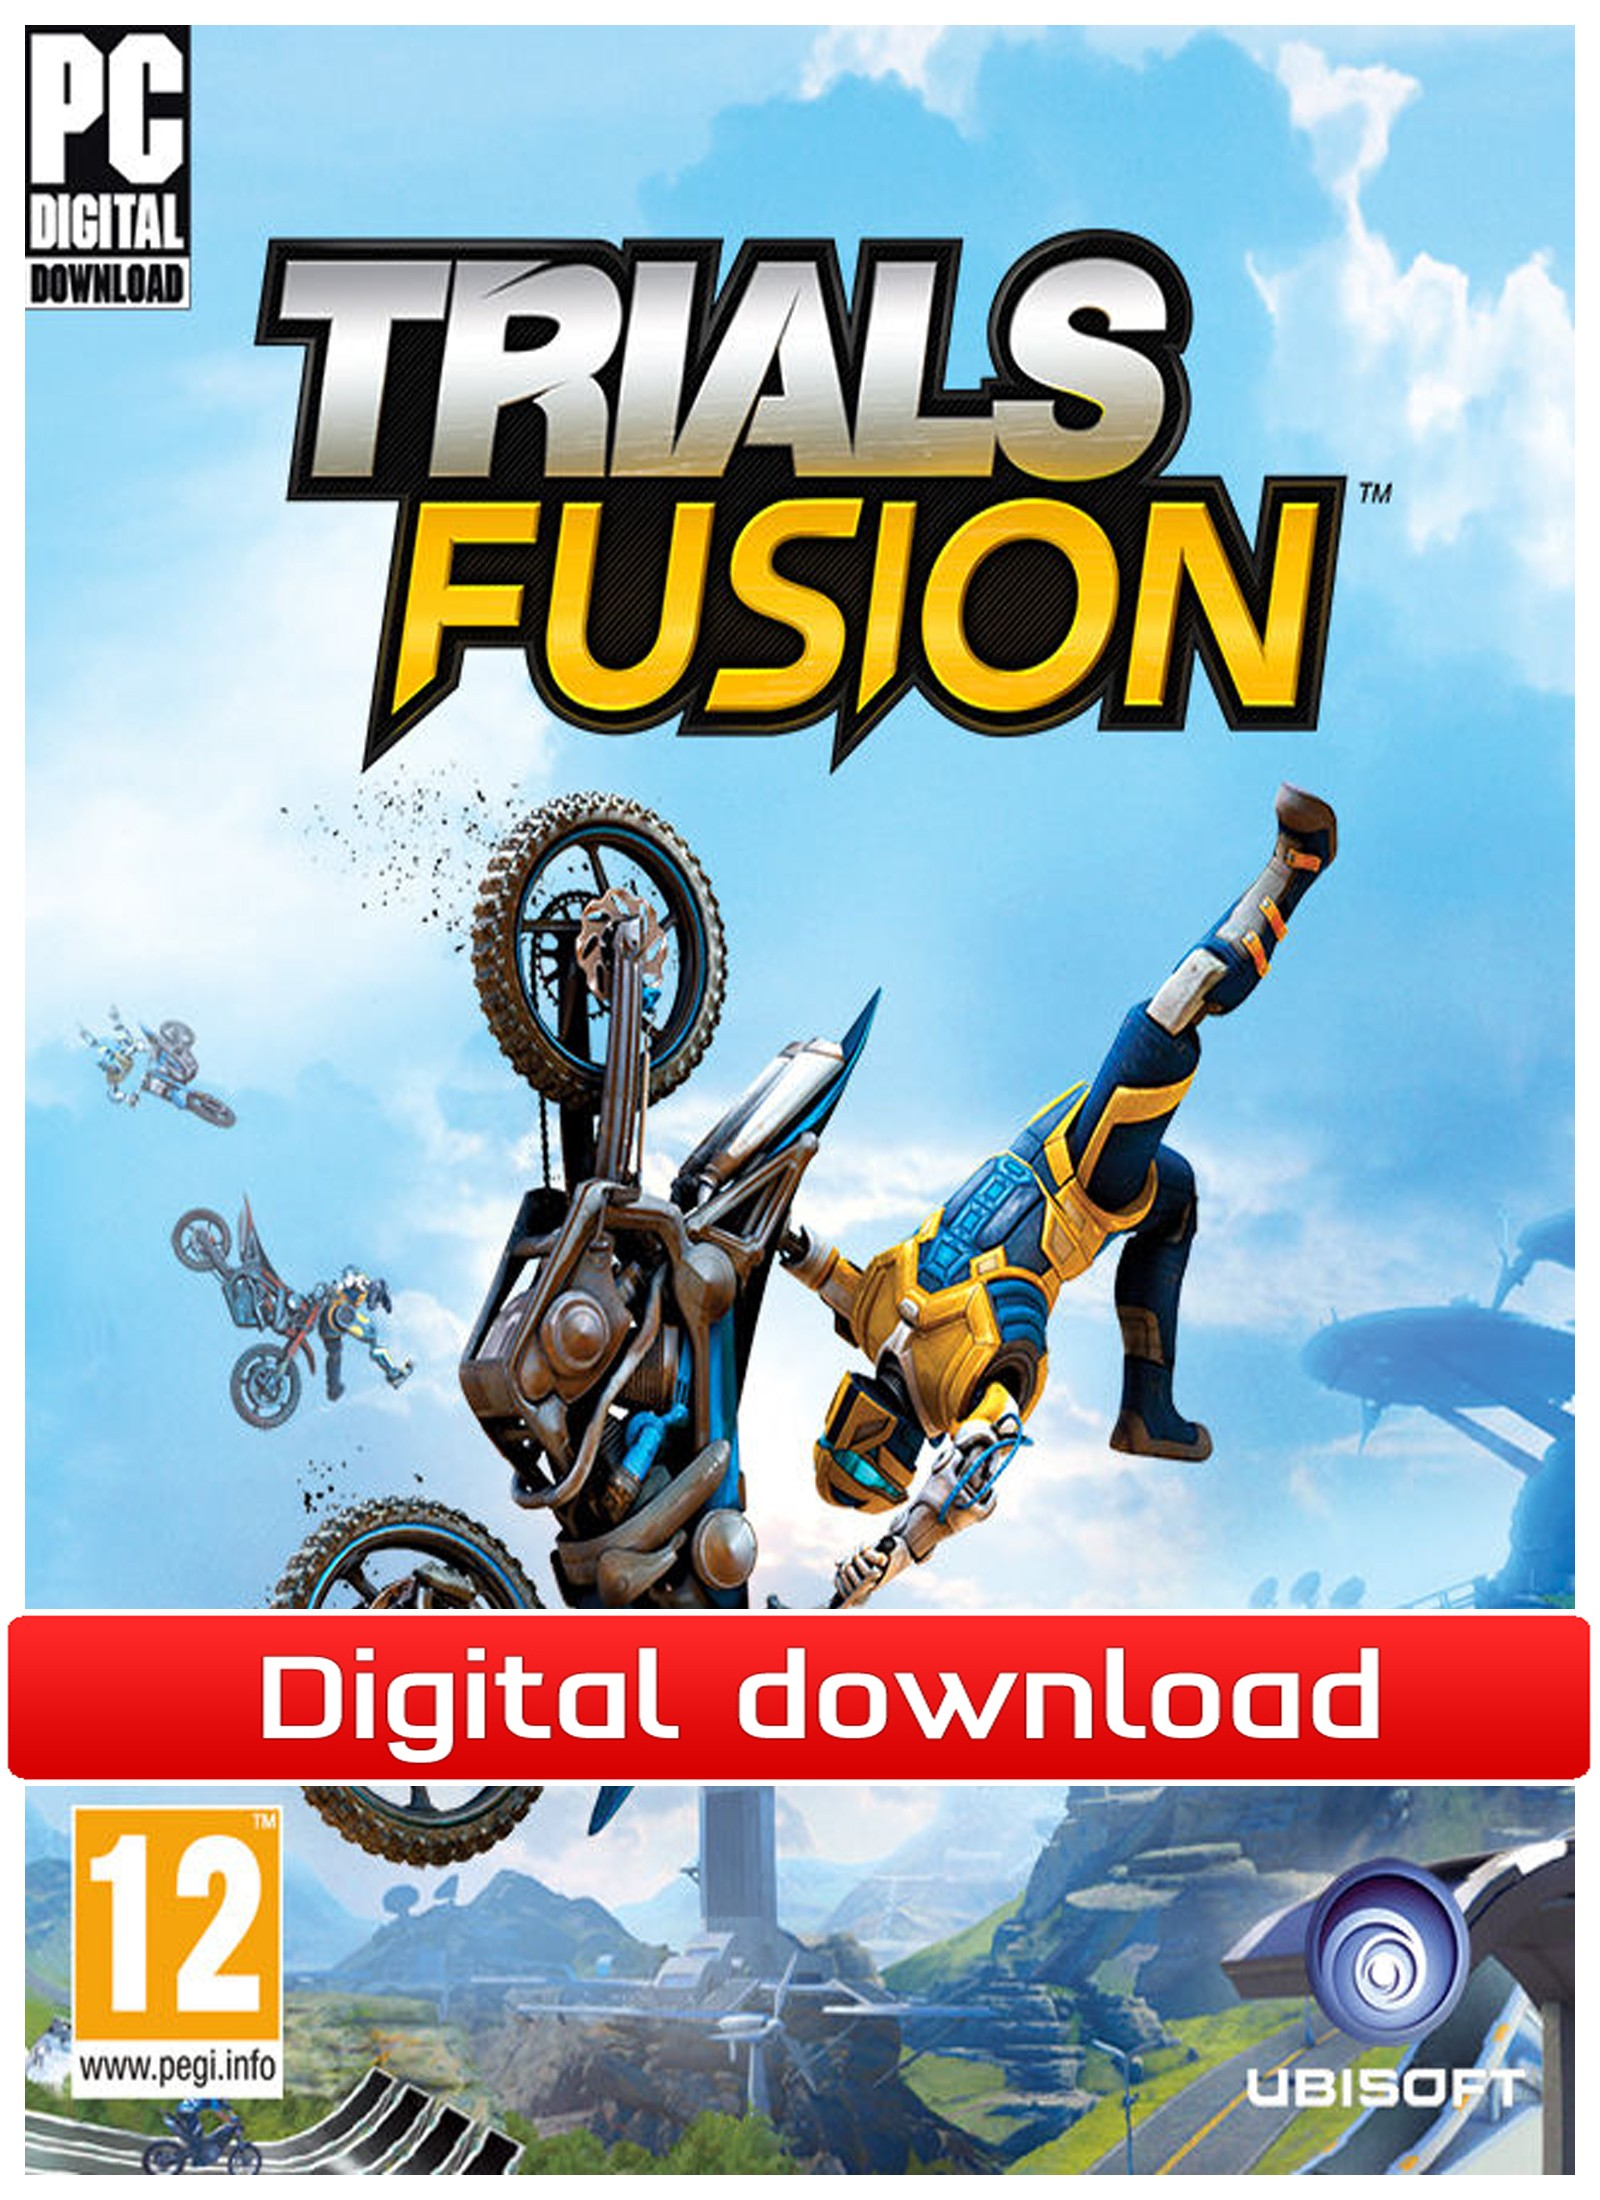 34804 : Trials Fusion (PC nedlastning)